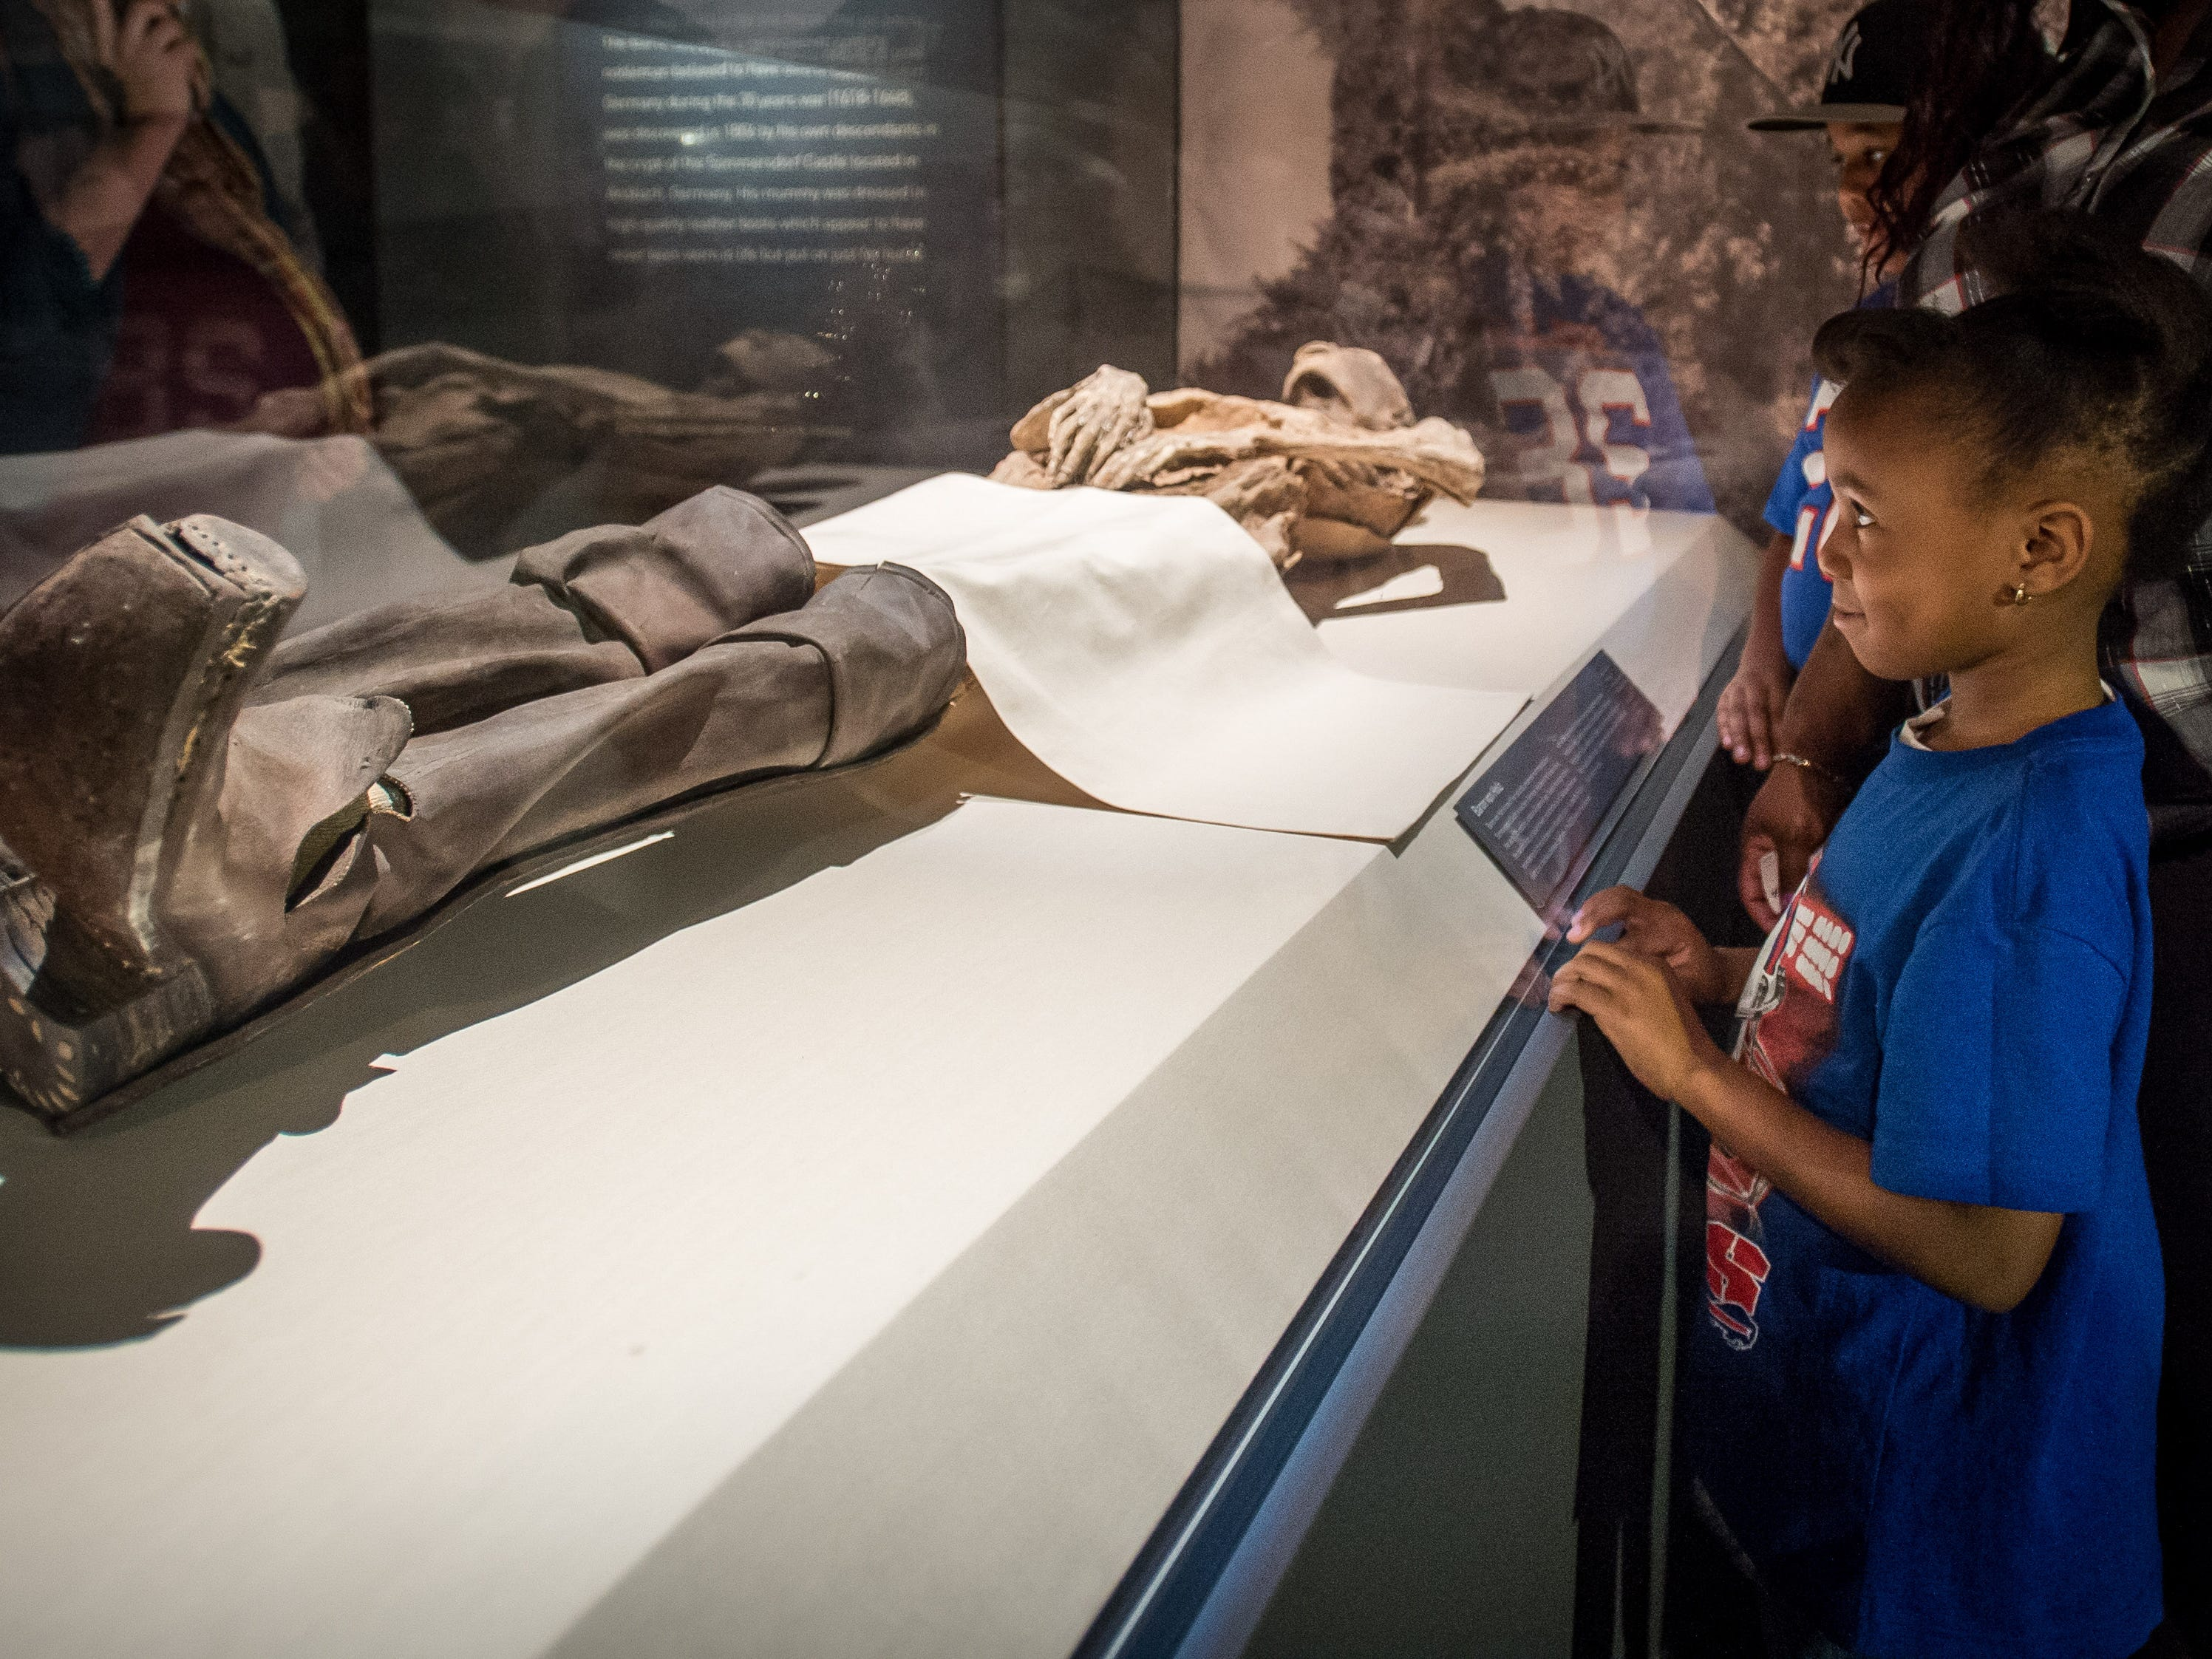 A young girl examines Baron Von Holz, part of the Mummies of the World: The Exhibition display at the Arizona Science Center.